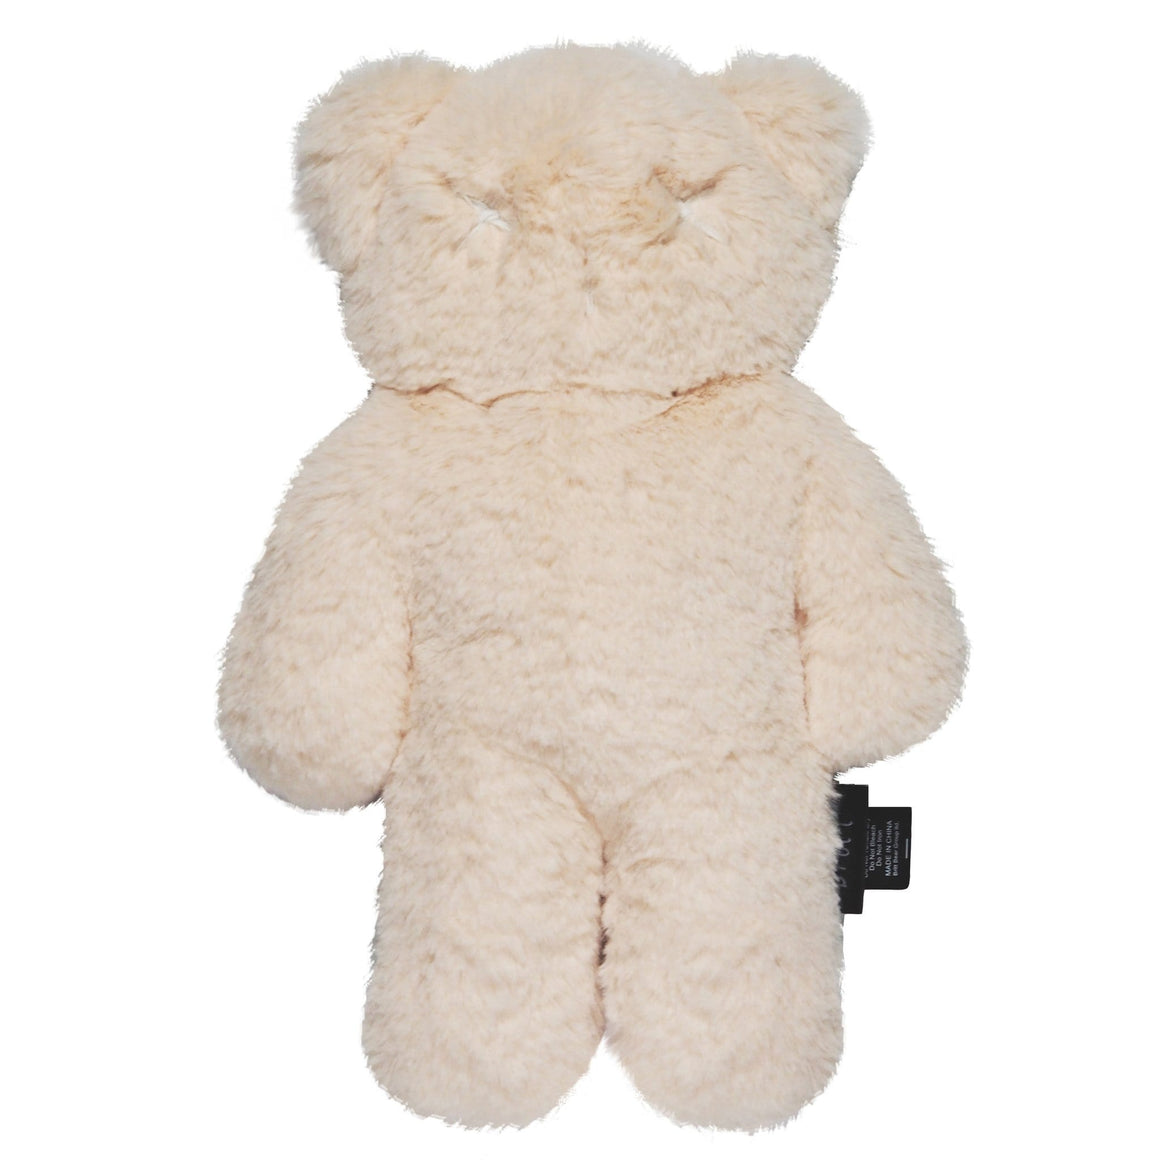 Britt Bear Australia - Cuddles Small Teddy - 24CM - Cream